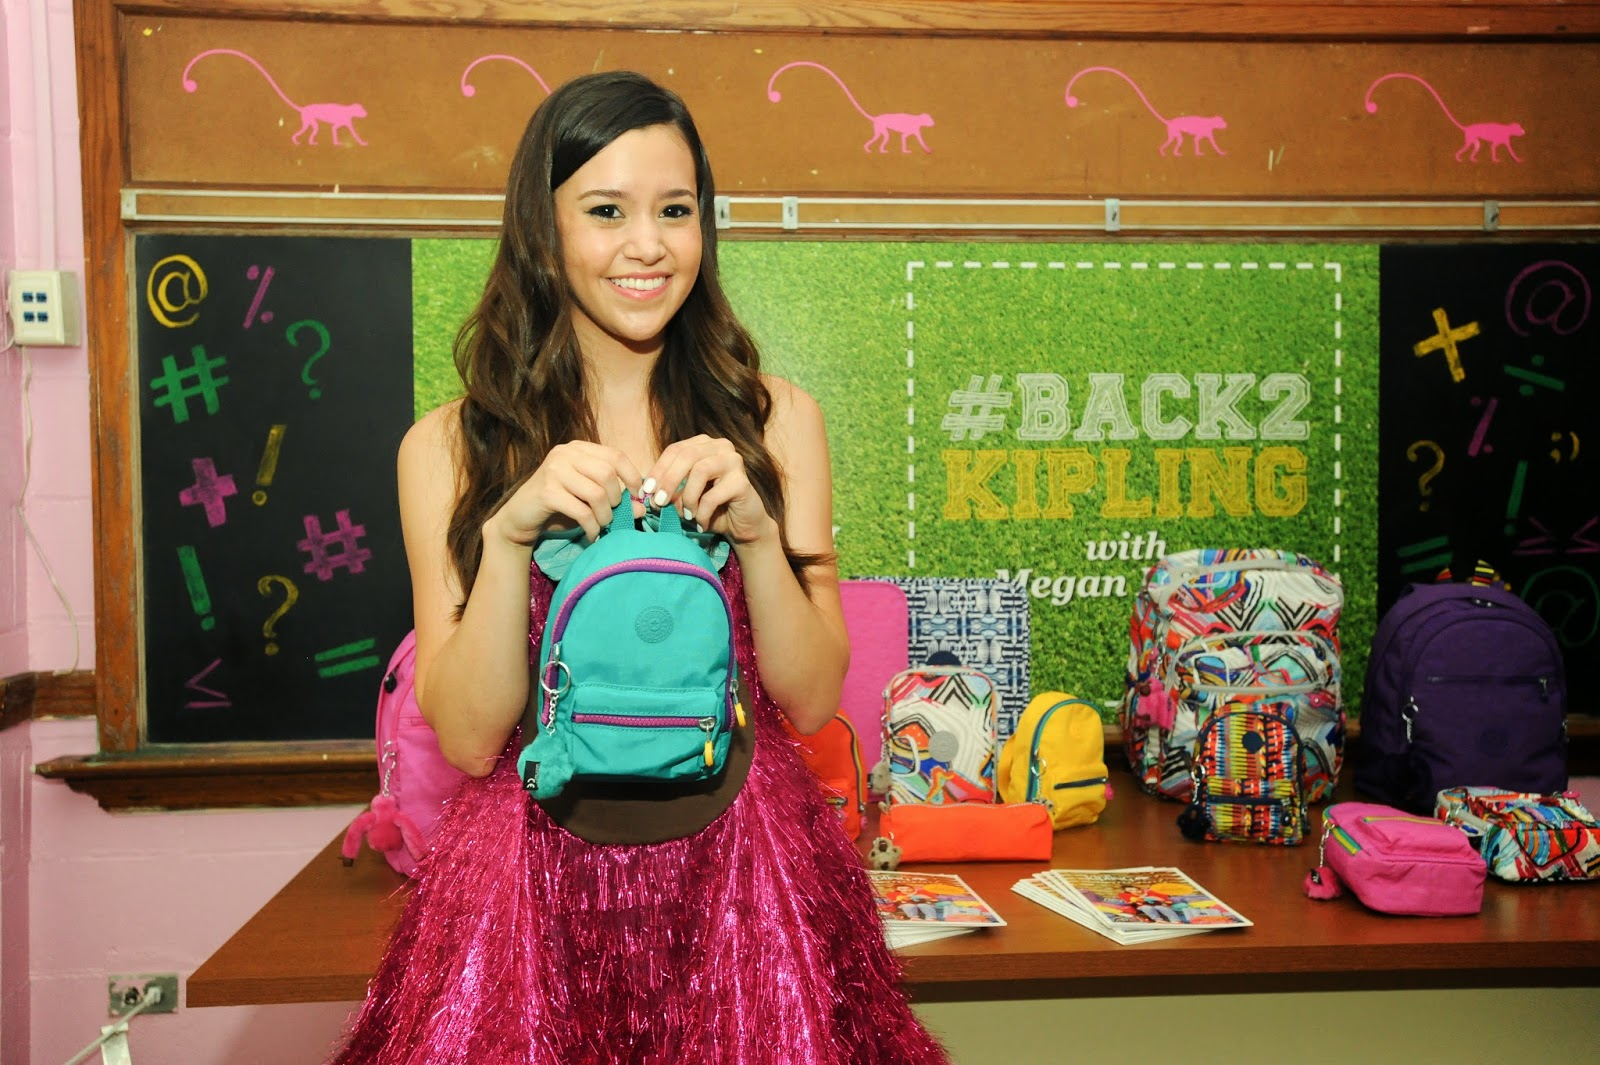 Kipling Launches #Back2Kipling Campaign with Megan Nicole